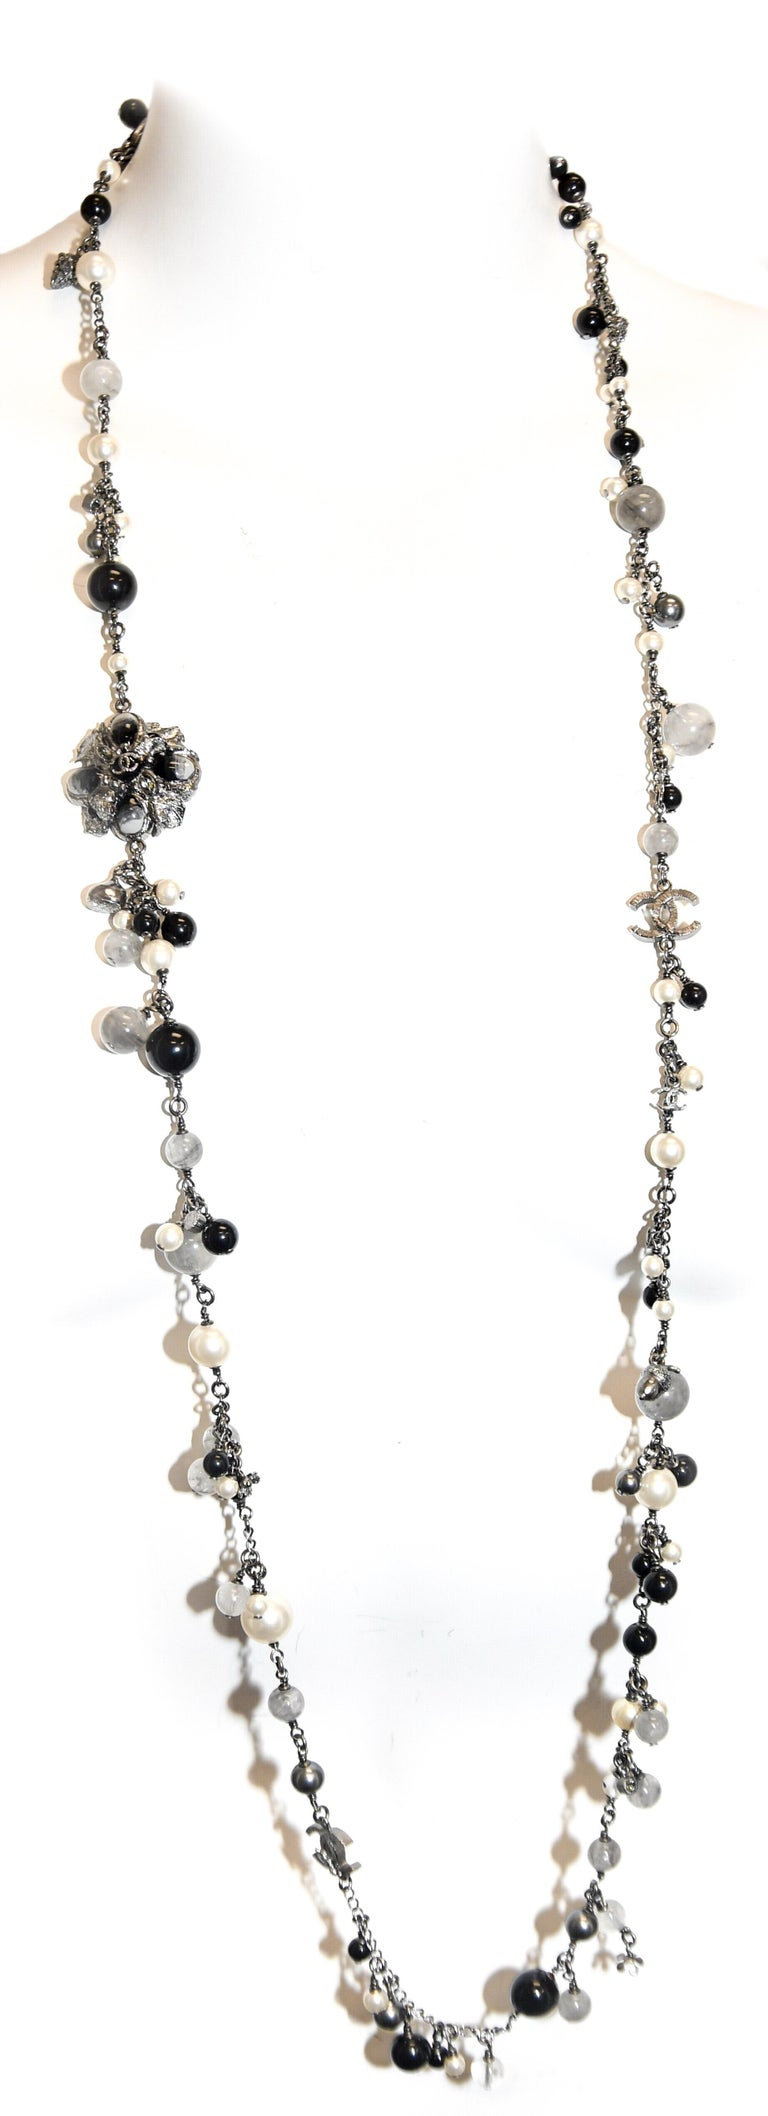 Instantly recognizable as an iconic Chanel necklace!  Pearls,  Onyx, Hematite and rutlilated quartz beads are only the beginning! Ever familiar Camellia is adorned on each side with CC logo.  Bezel set crystals, acorns, CC logos and tiny flower